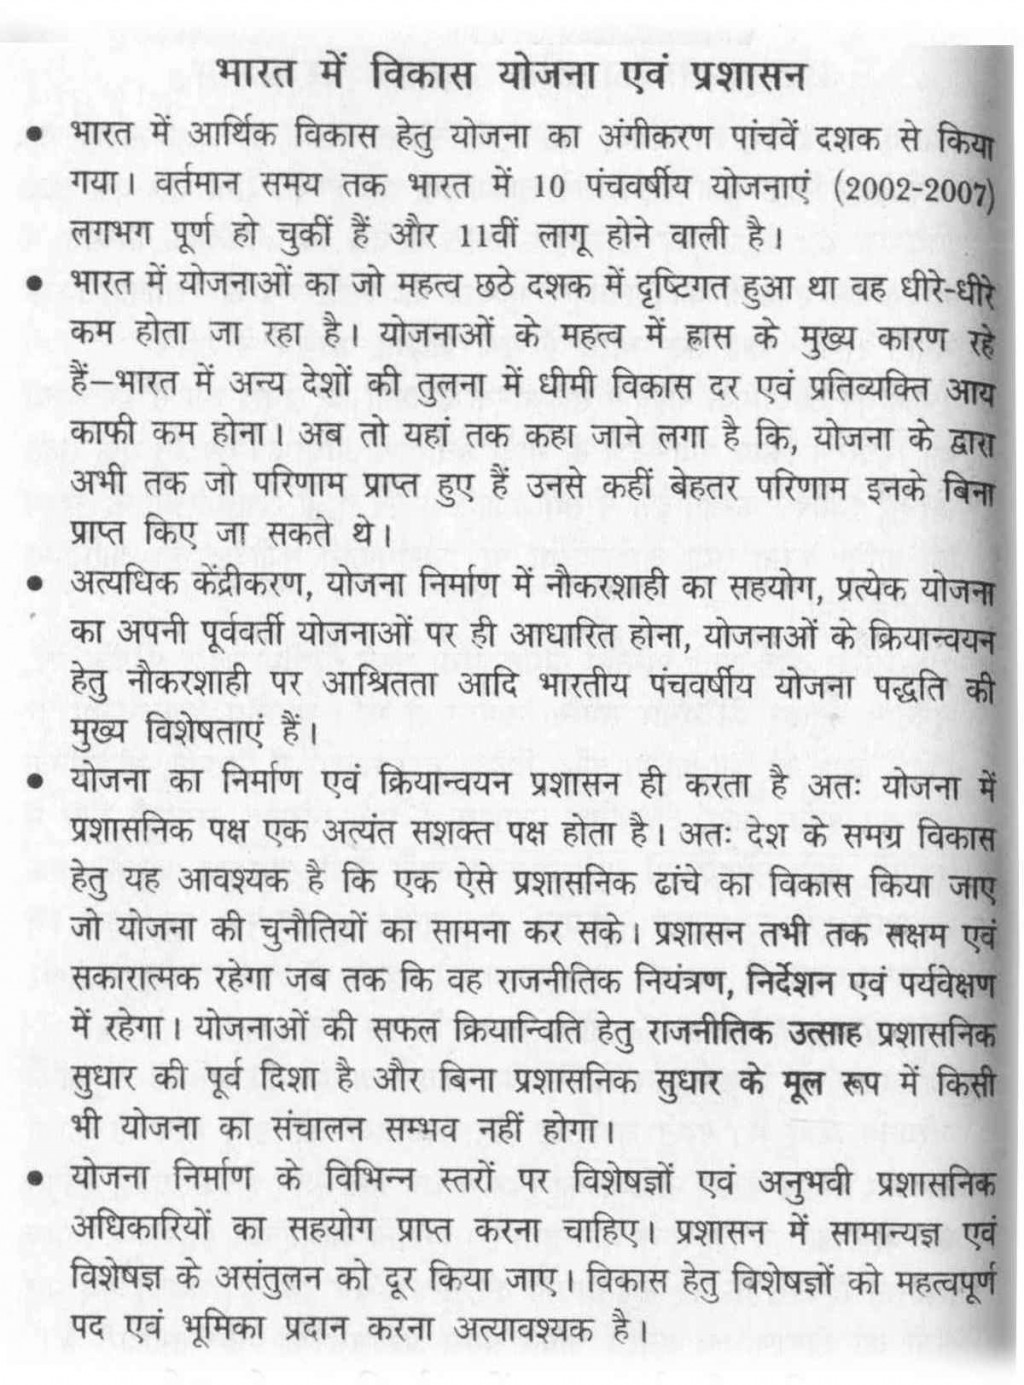 009 My Country Essay In Hindi Example Best Ideas Of Good Manner Easy Say No To Phenomenal 10 Lines Is Great Large